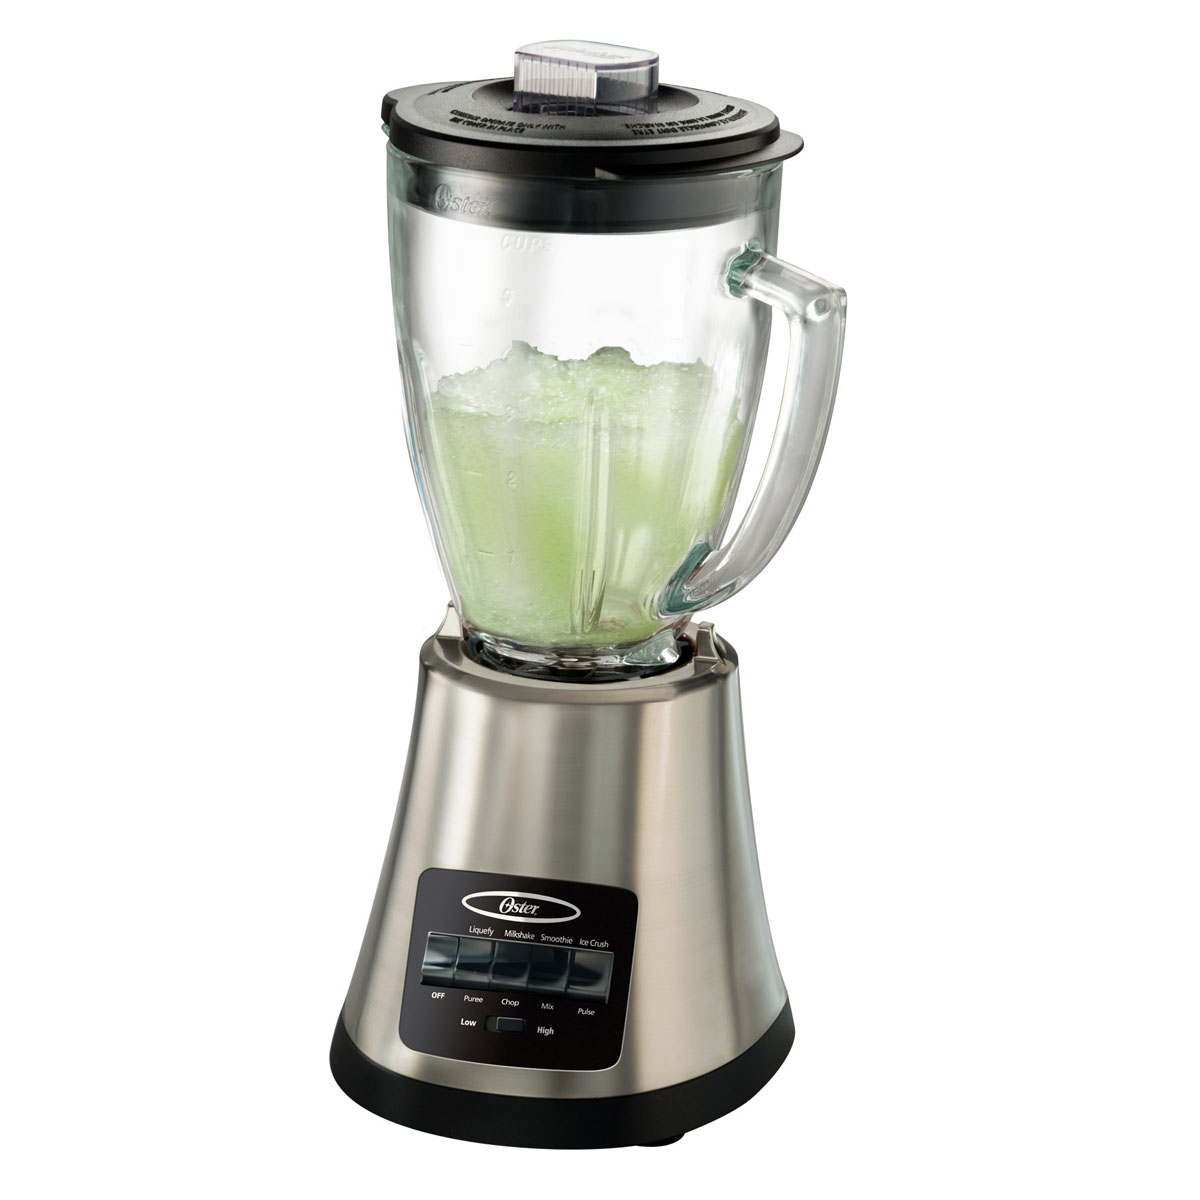 Oster® 8 Speed Blender, Brushed Nickel Parts | Oster® Canada